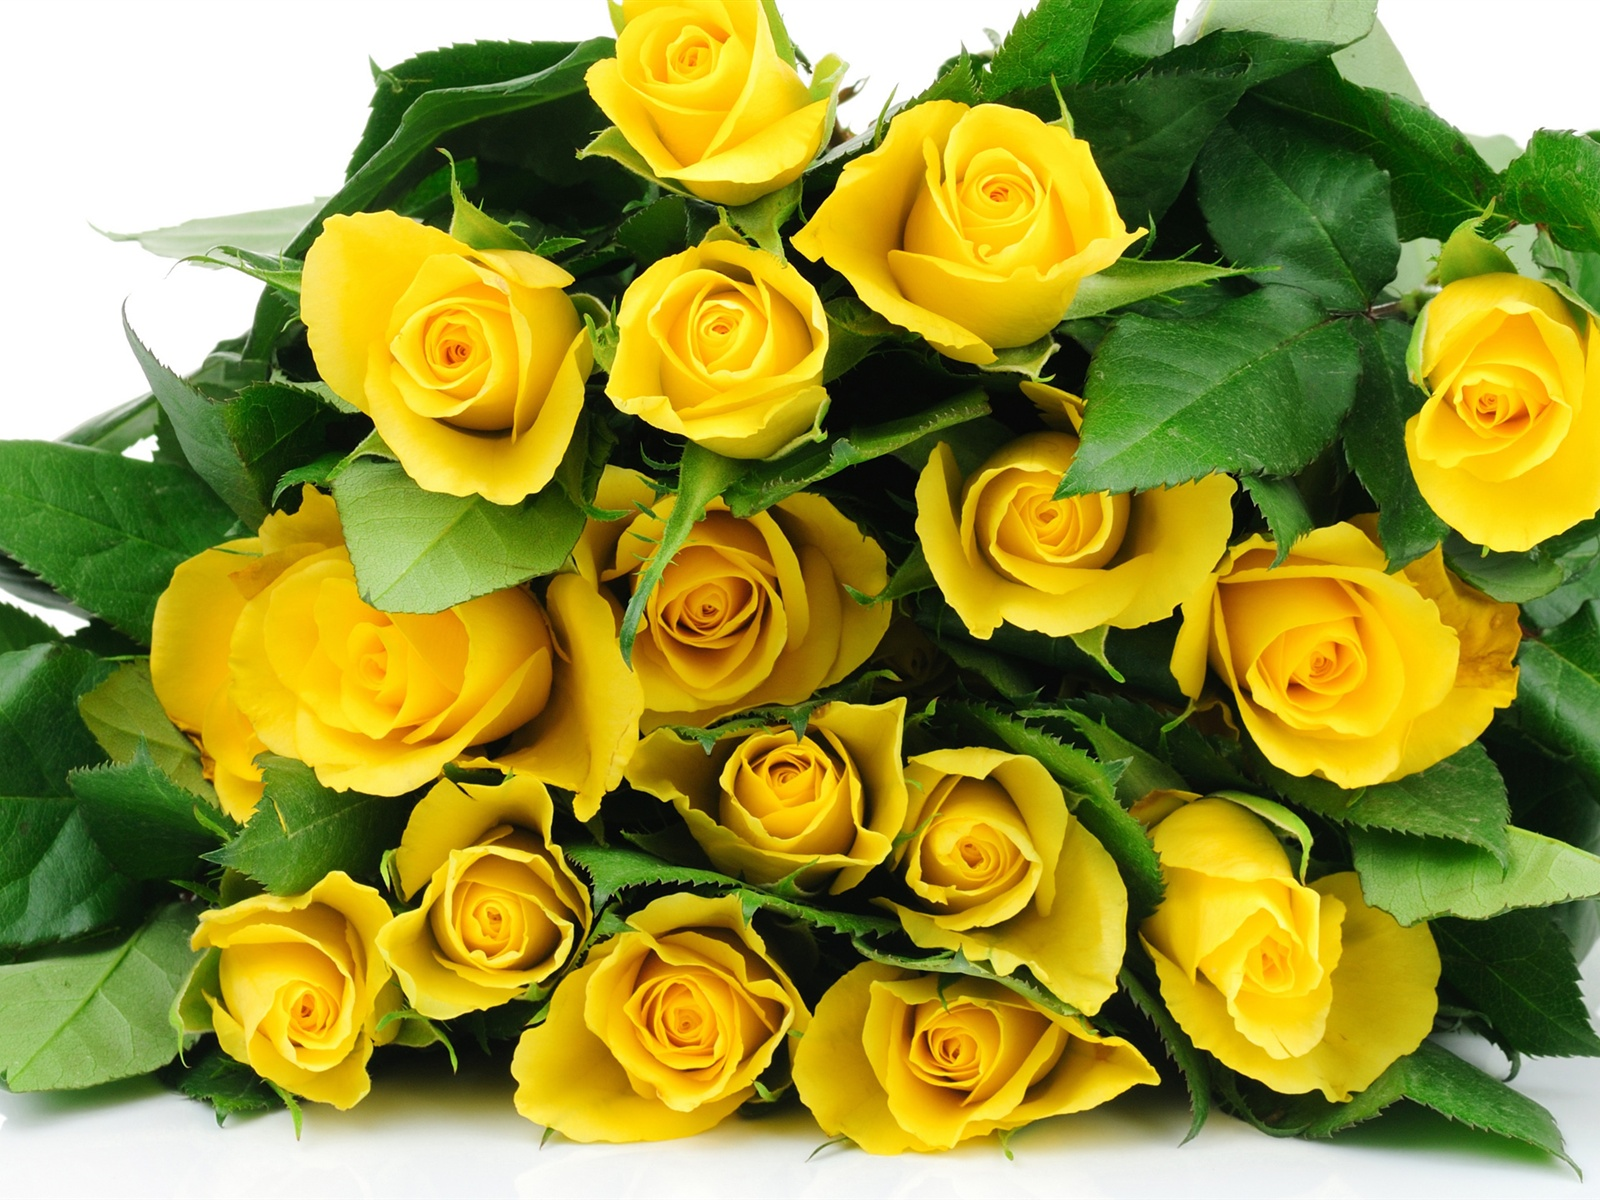 Images Of Yellow Rose Flowers Bouquet Spacehero